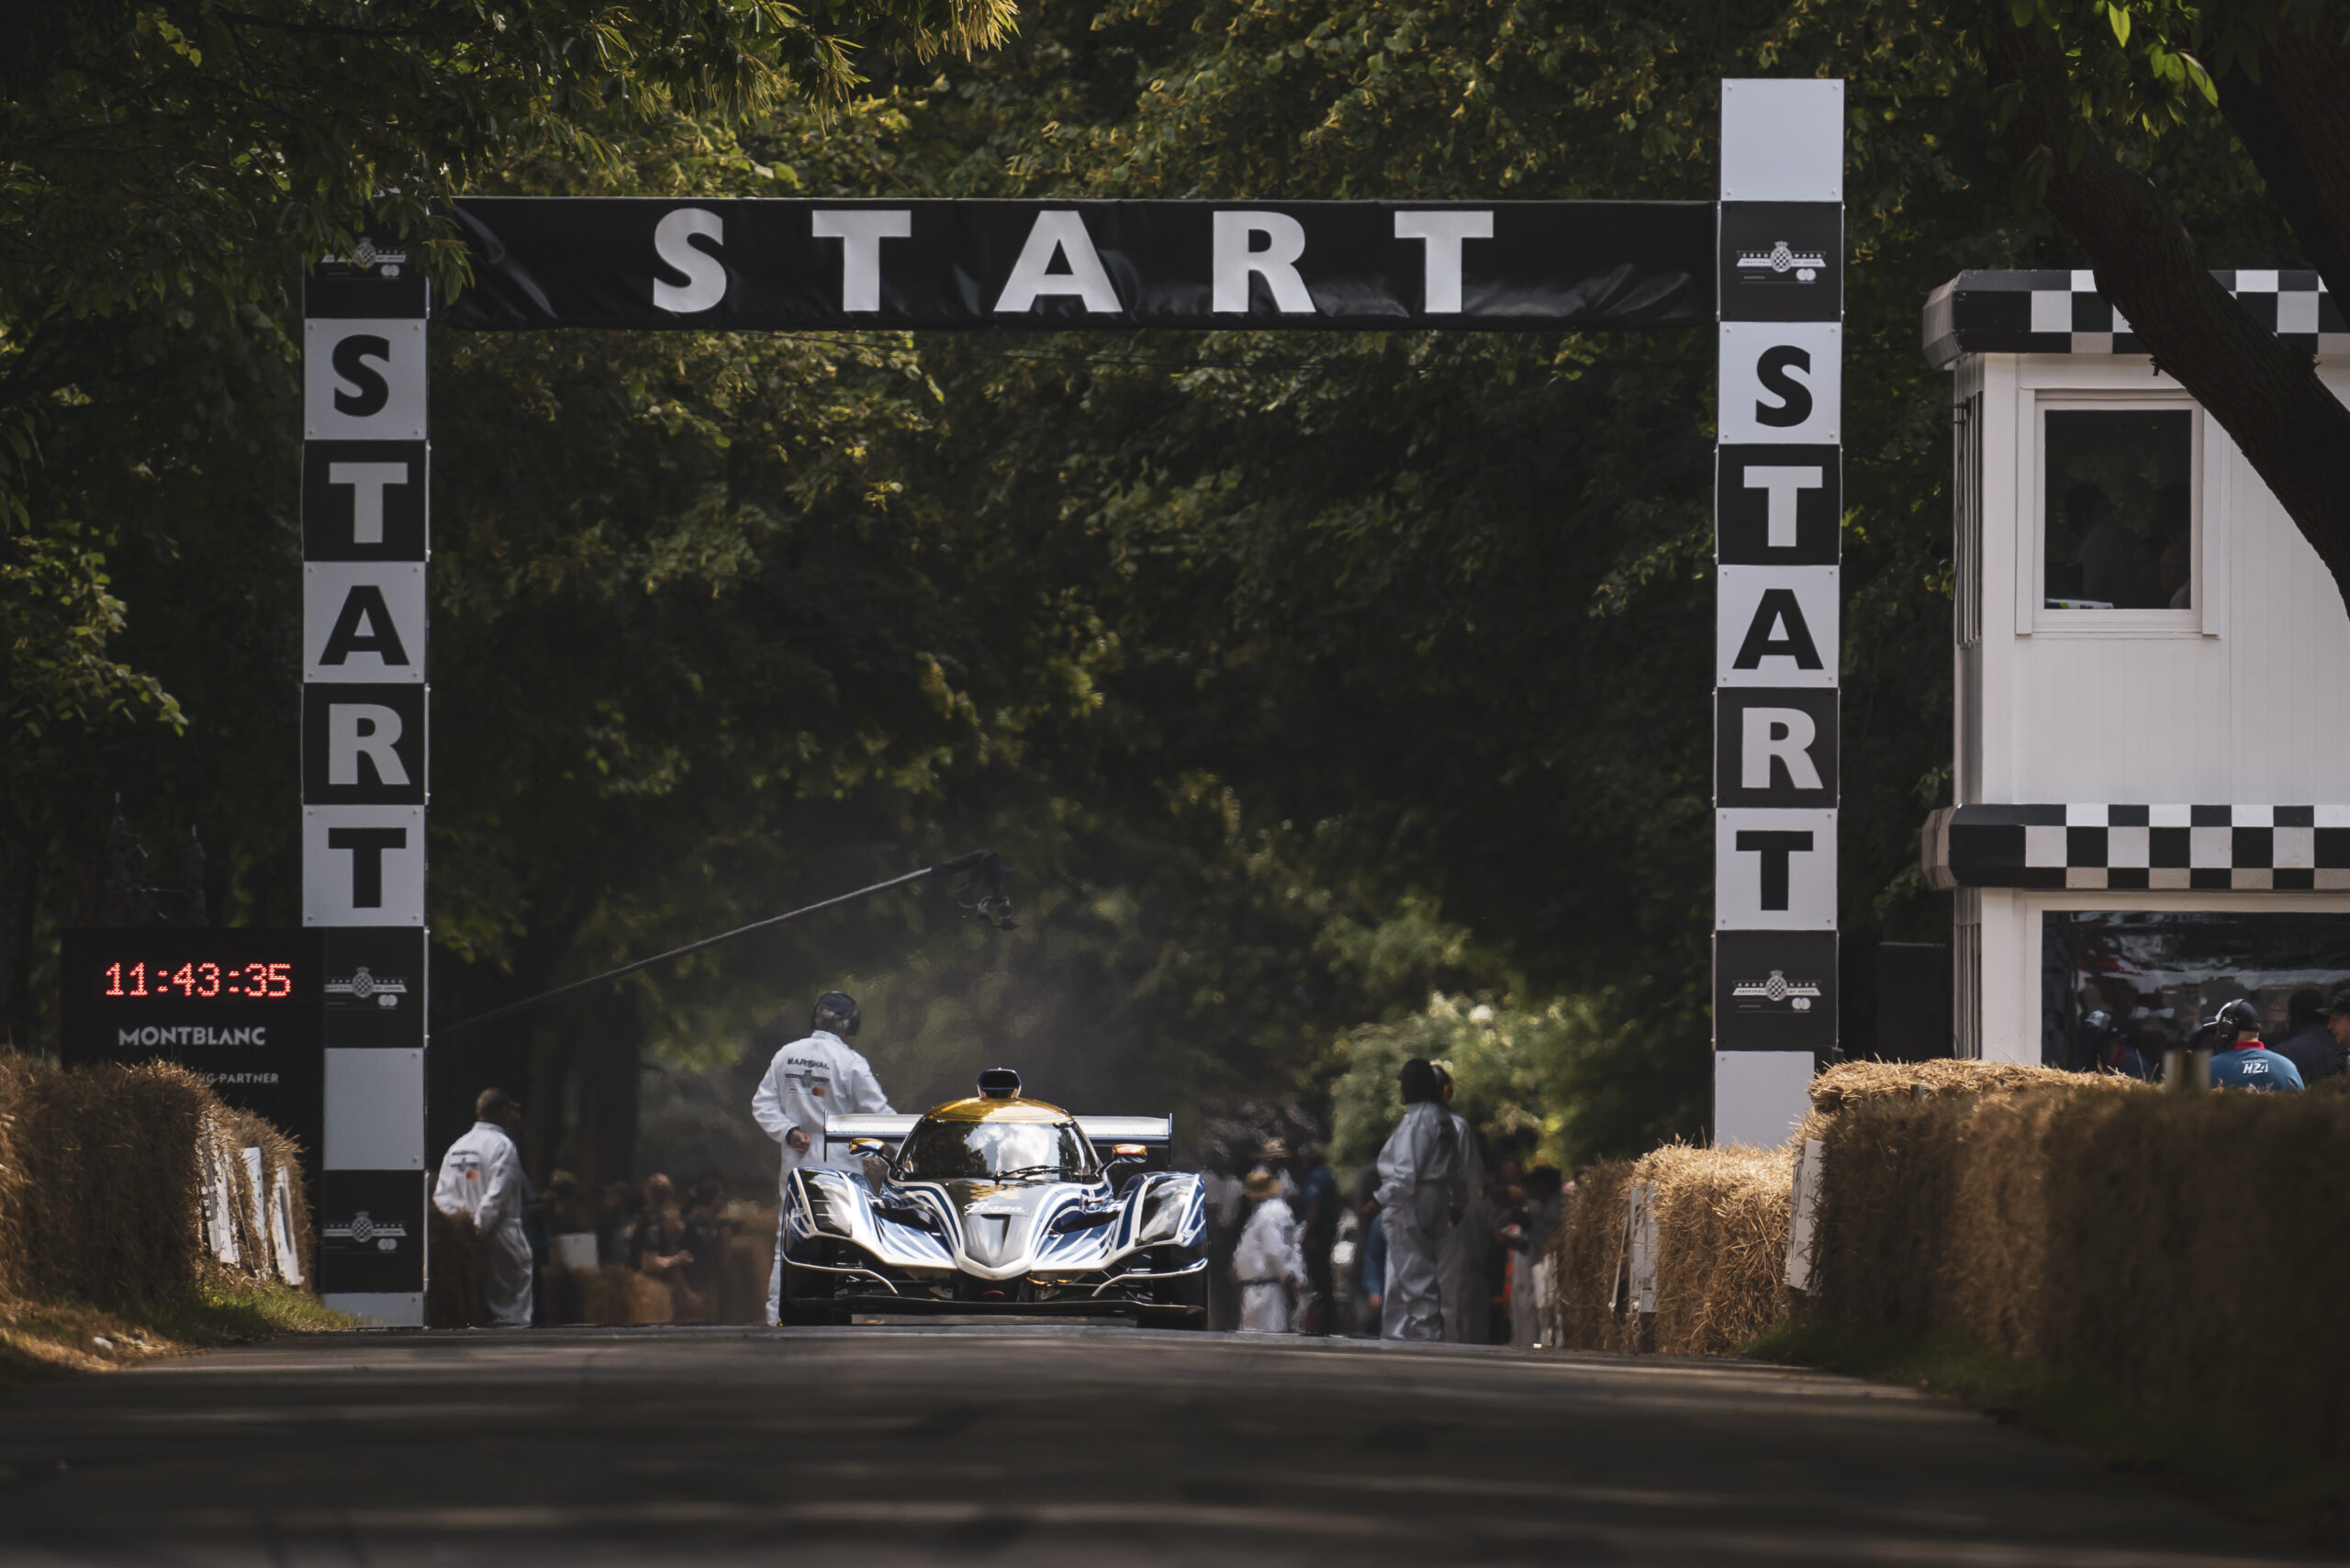 Frank Stephenson-liveried Praga R1 stands out at the 2021 Goodwood Festival of Speed